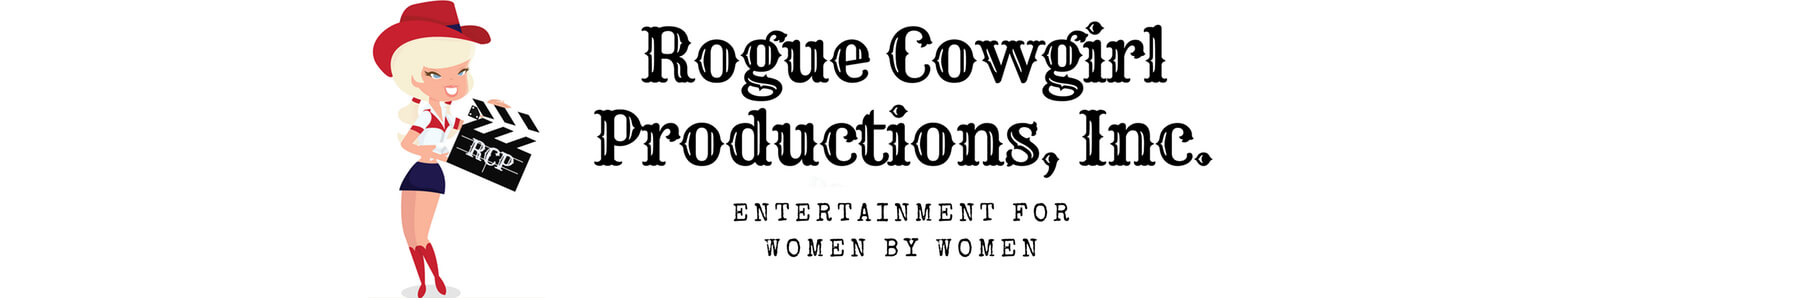 Rogue Cowgirl Productions